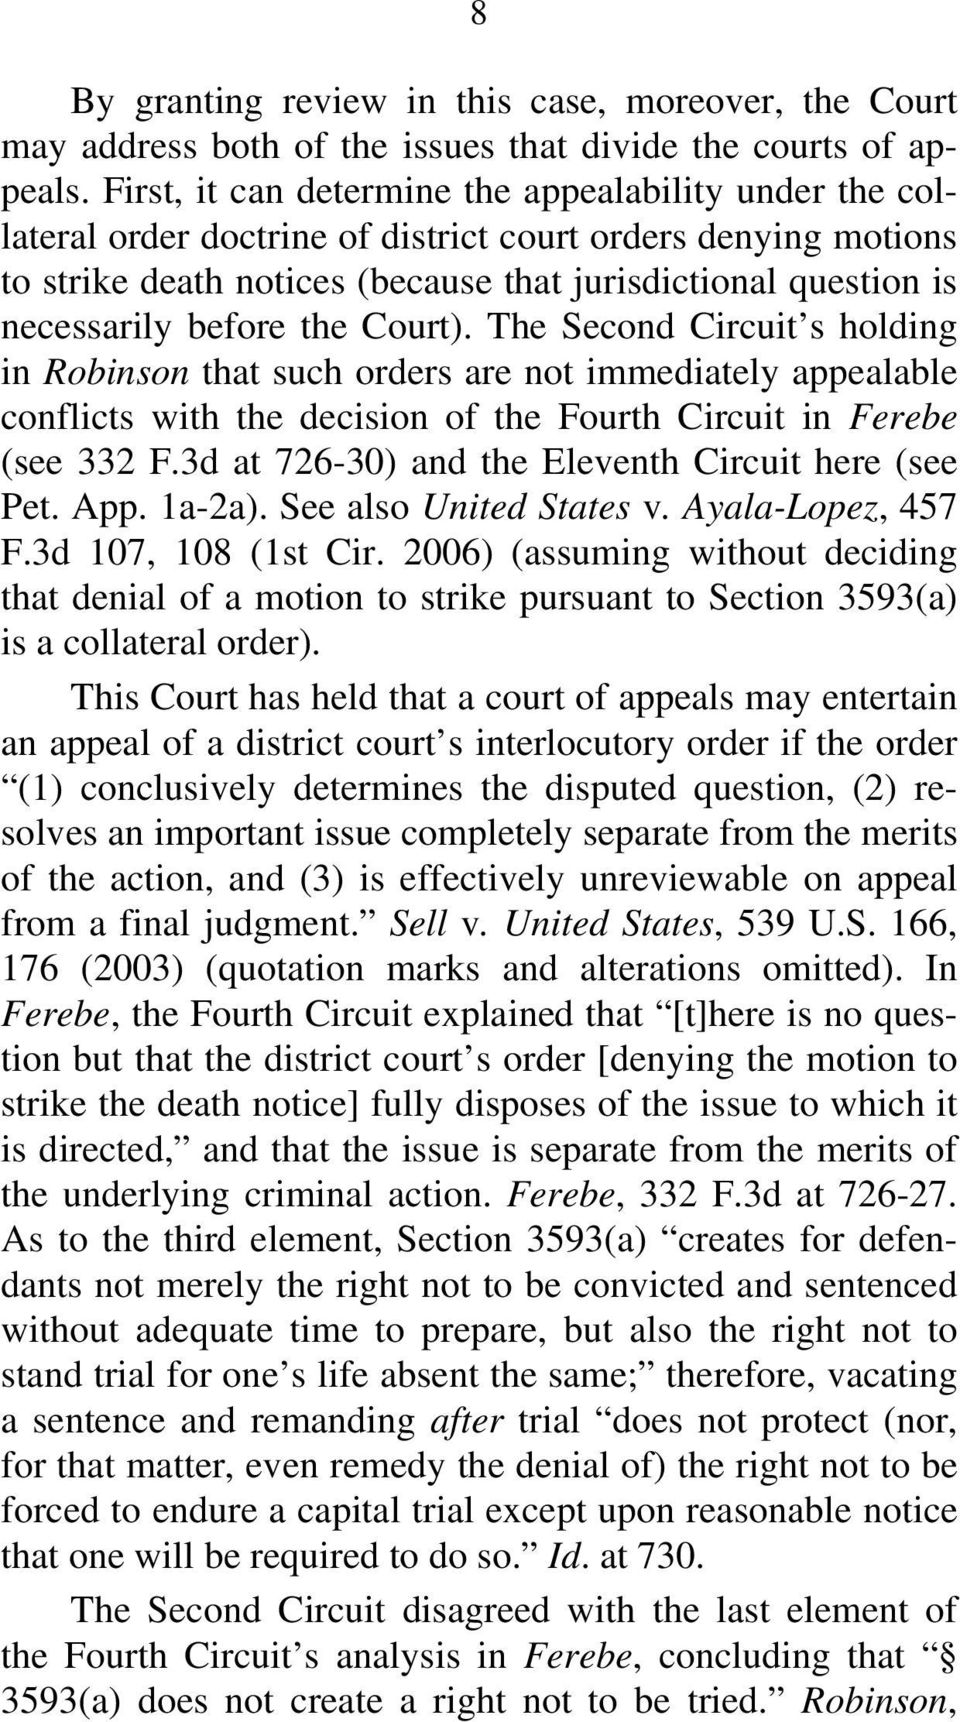 before the Court). The Second Circuit s holding in Robinson that such orders are not immediately appealable conflicts with the decision of the Fourth Circuit in Ferebe (see 332 F.